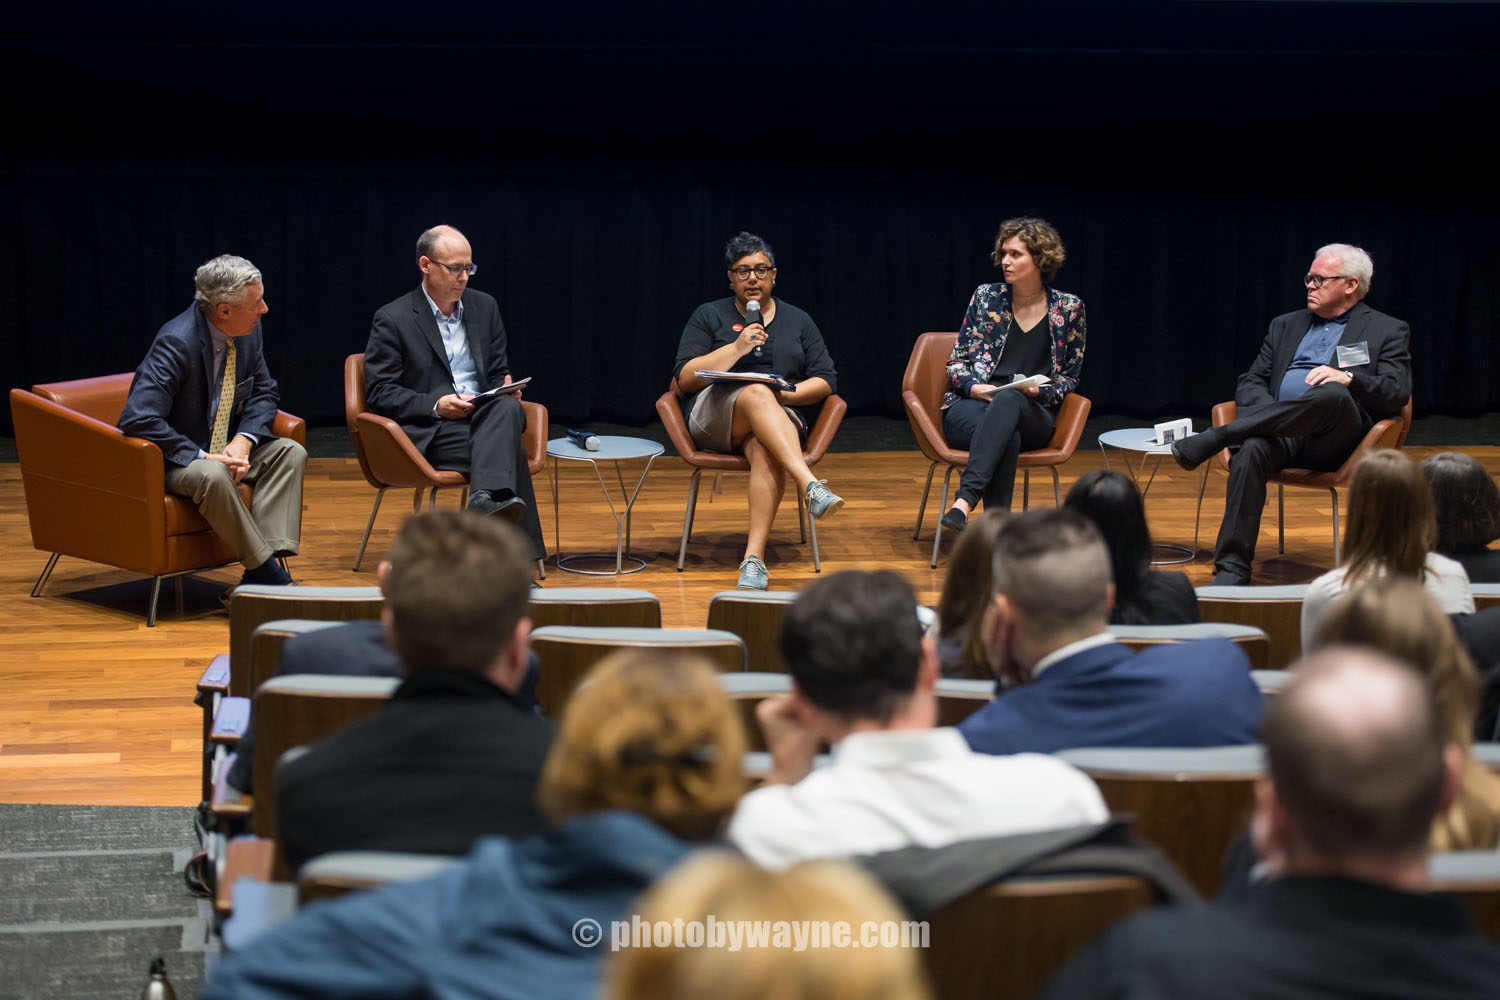 12-basic-income-guarantee-conference-panel-discussion.jpg